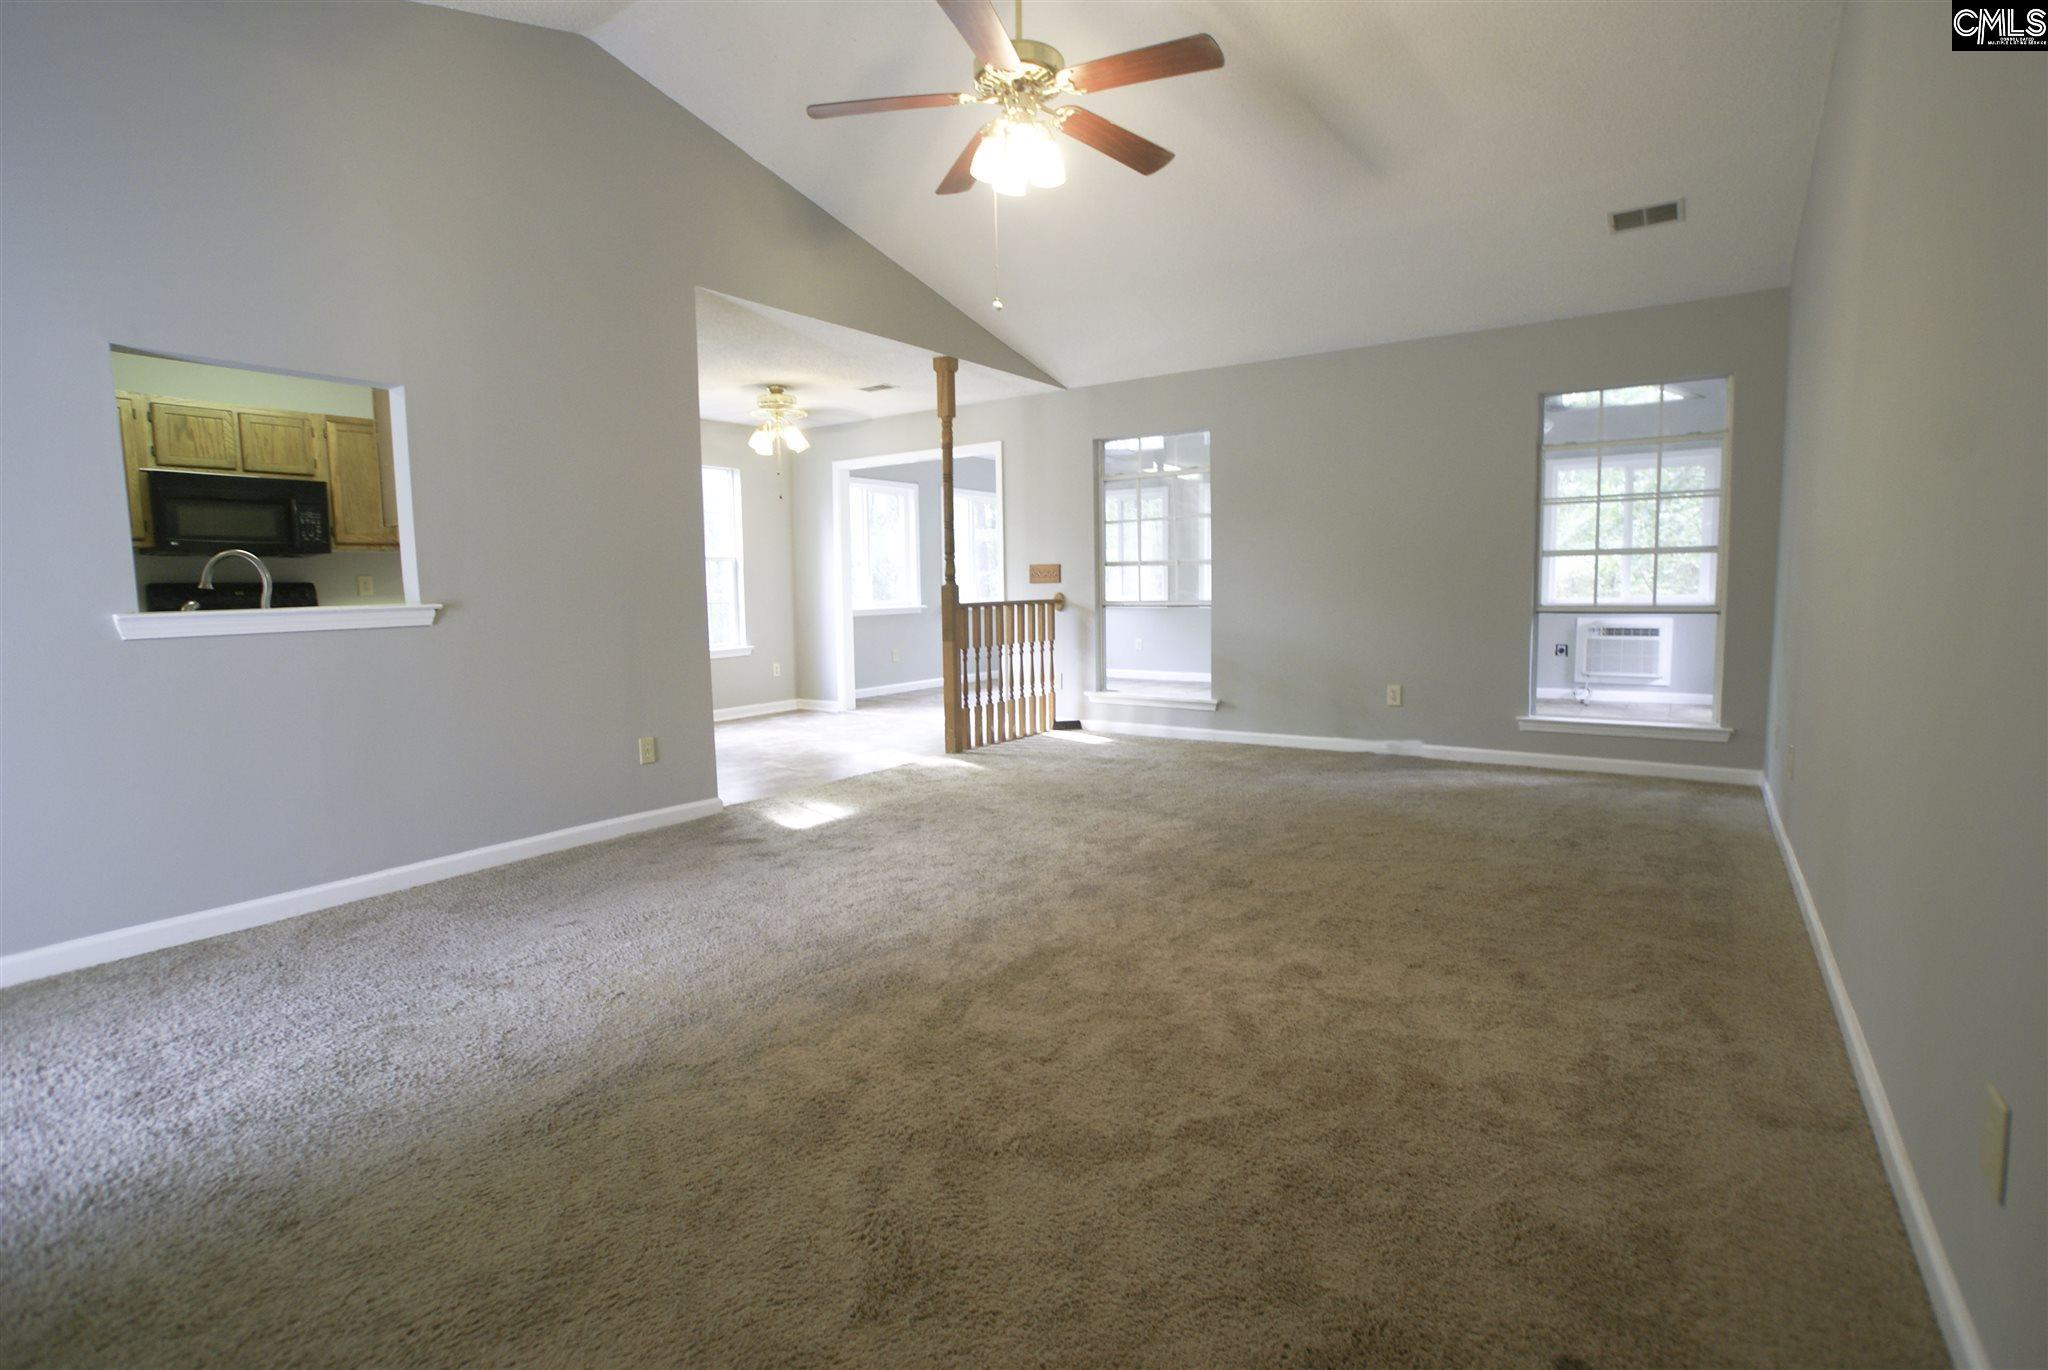 3 bed / 2 baths Home in Irmo for $135,000